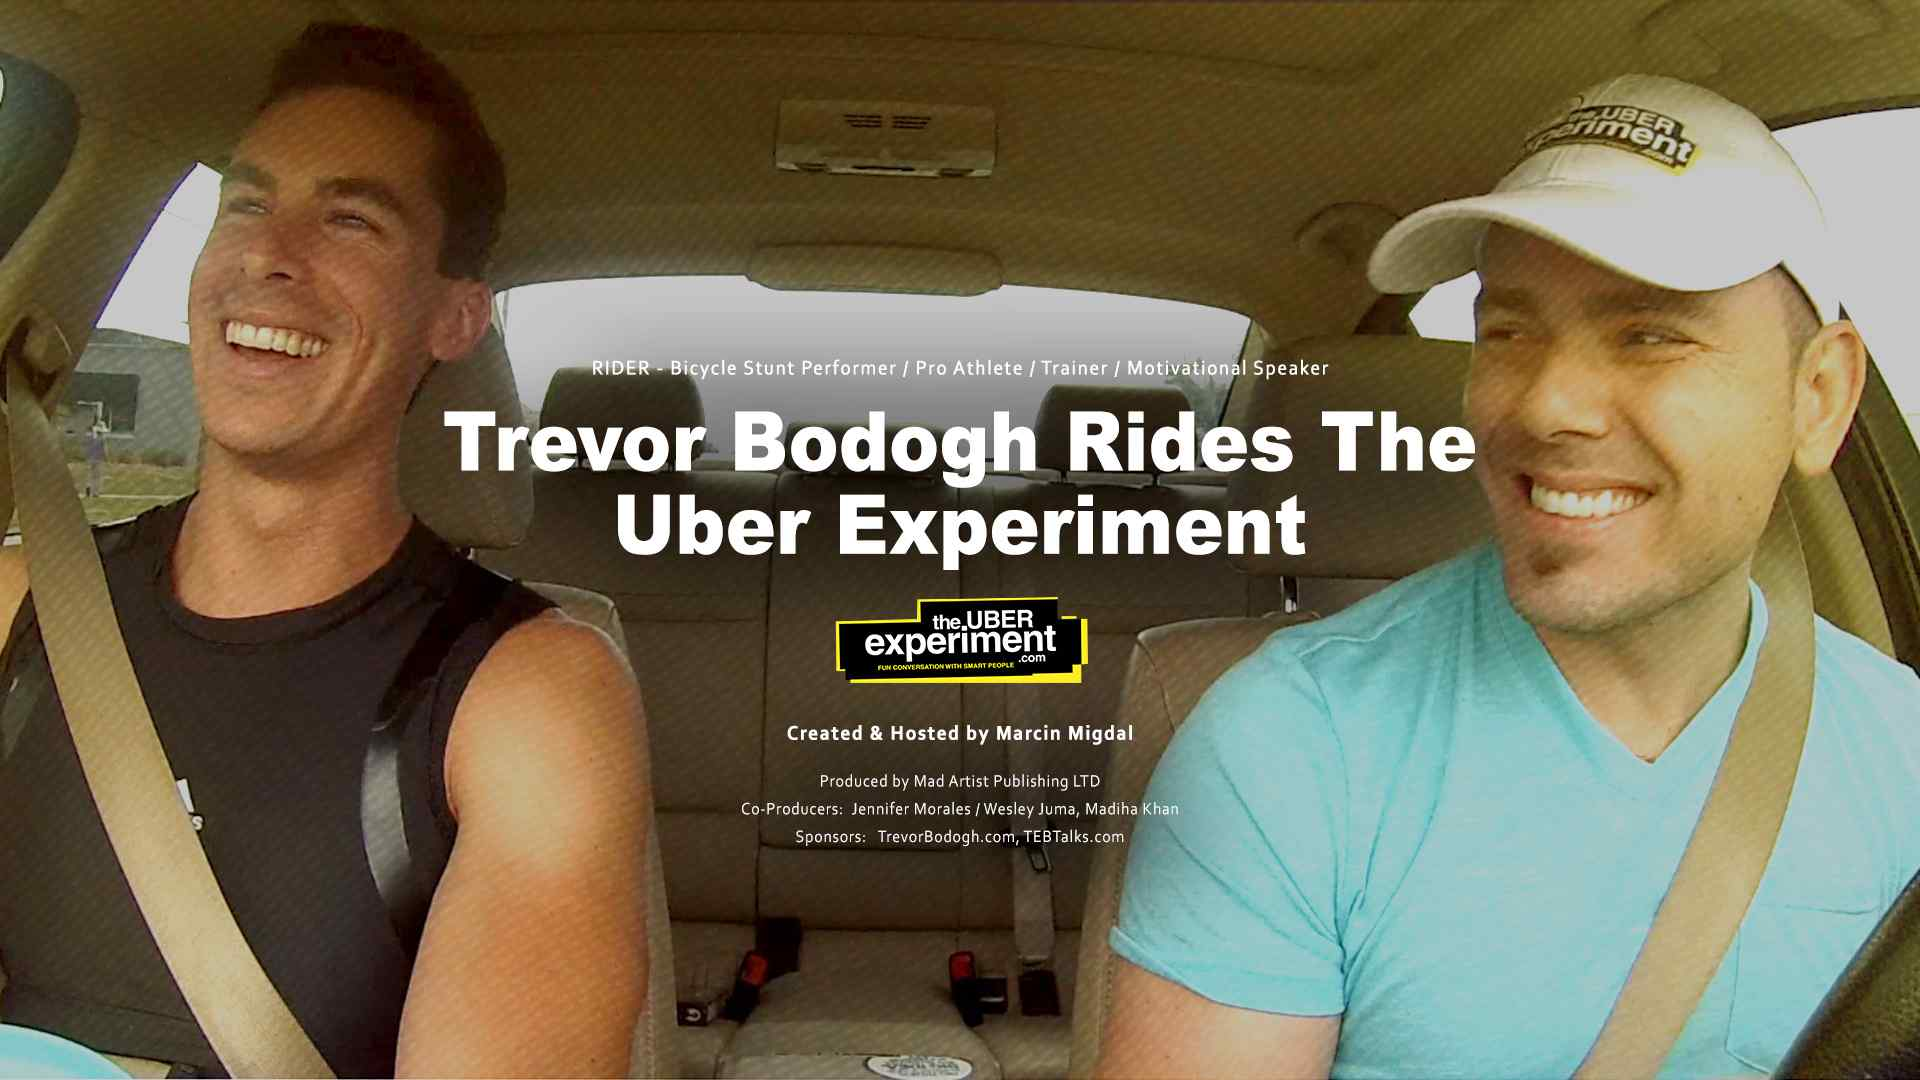 Bicycle stunt performer & trainer Trevor Bodogh rides Business Entertainment Show